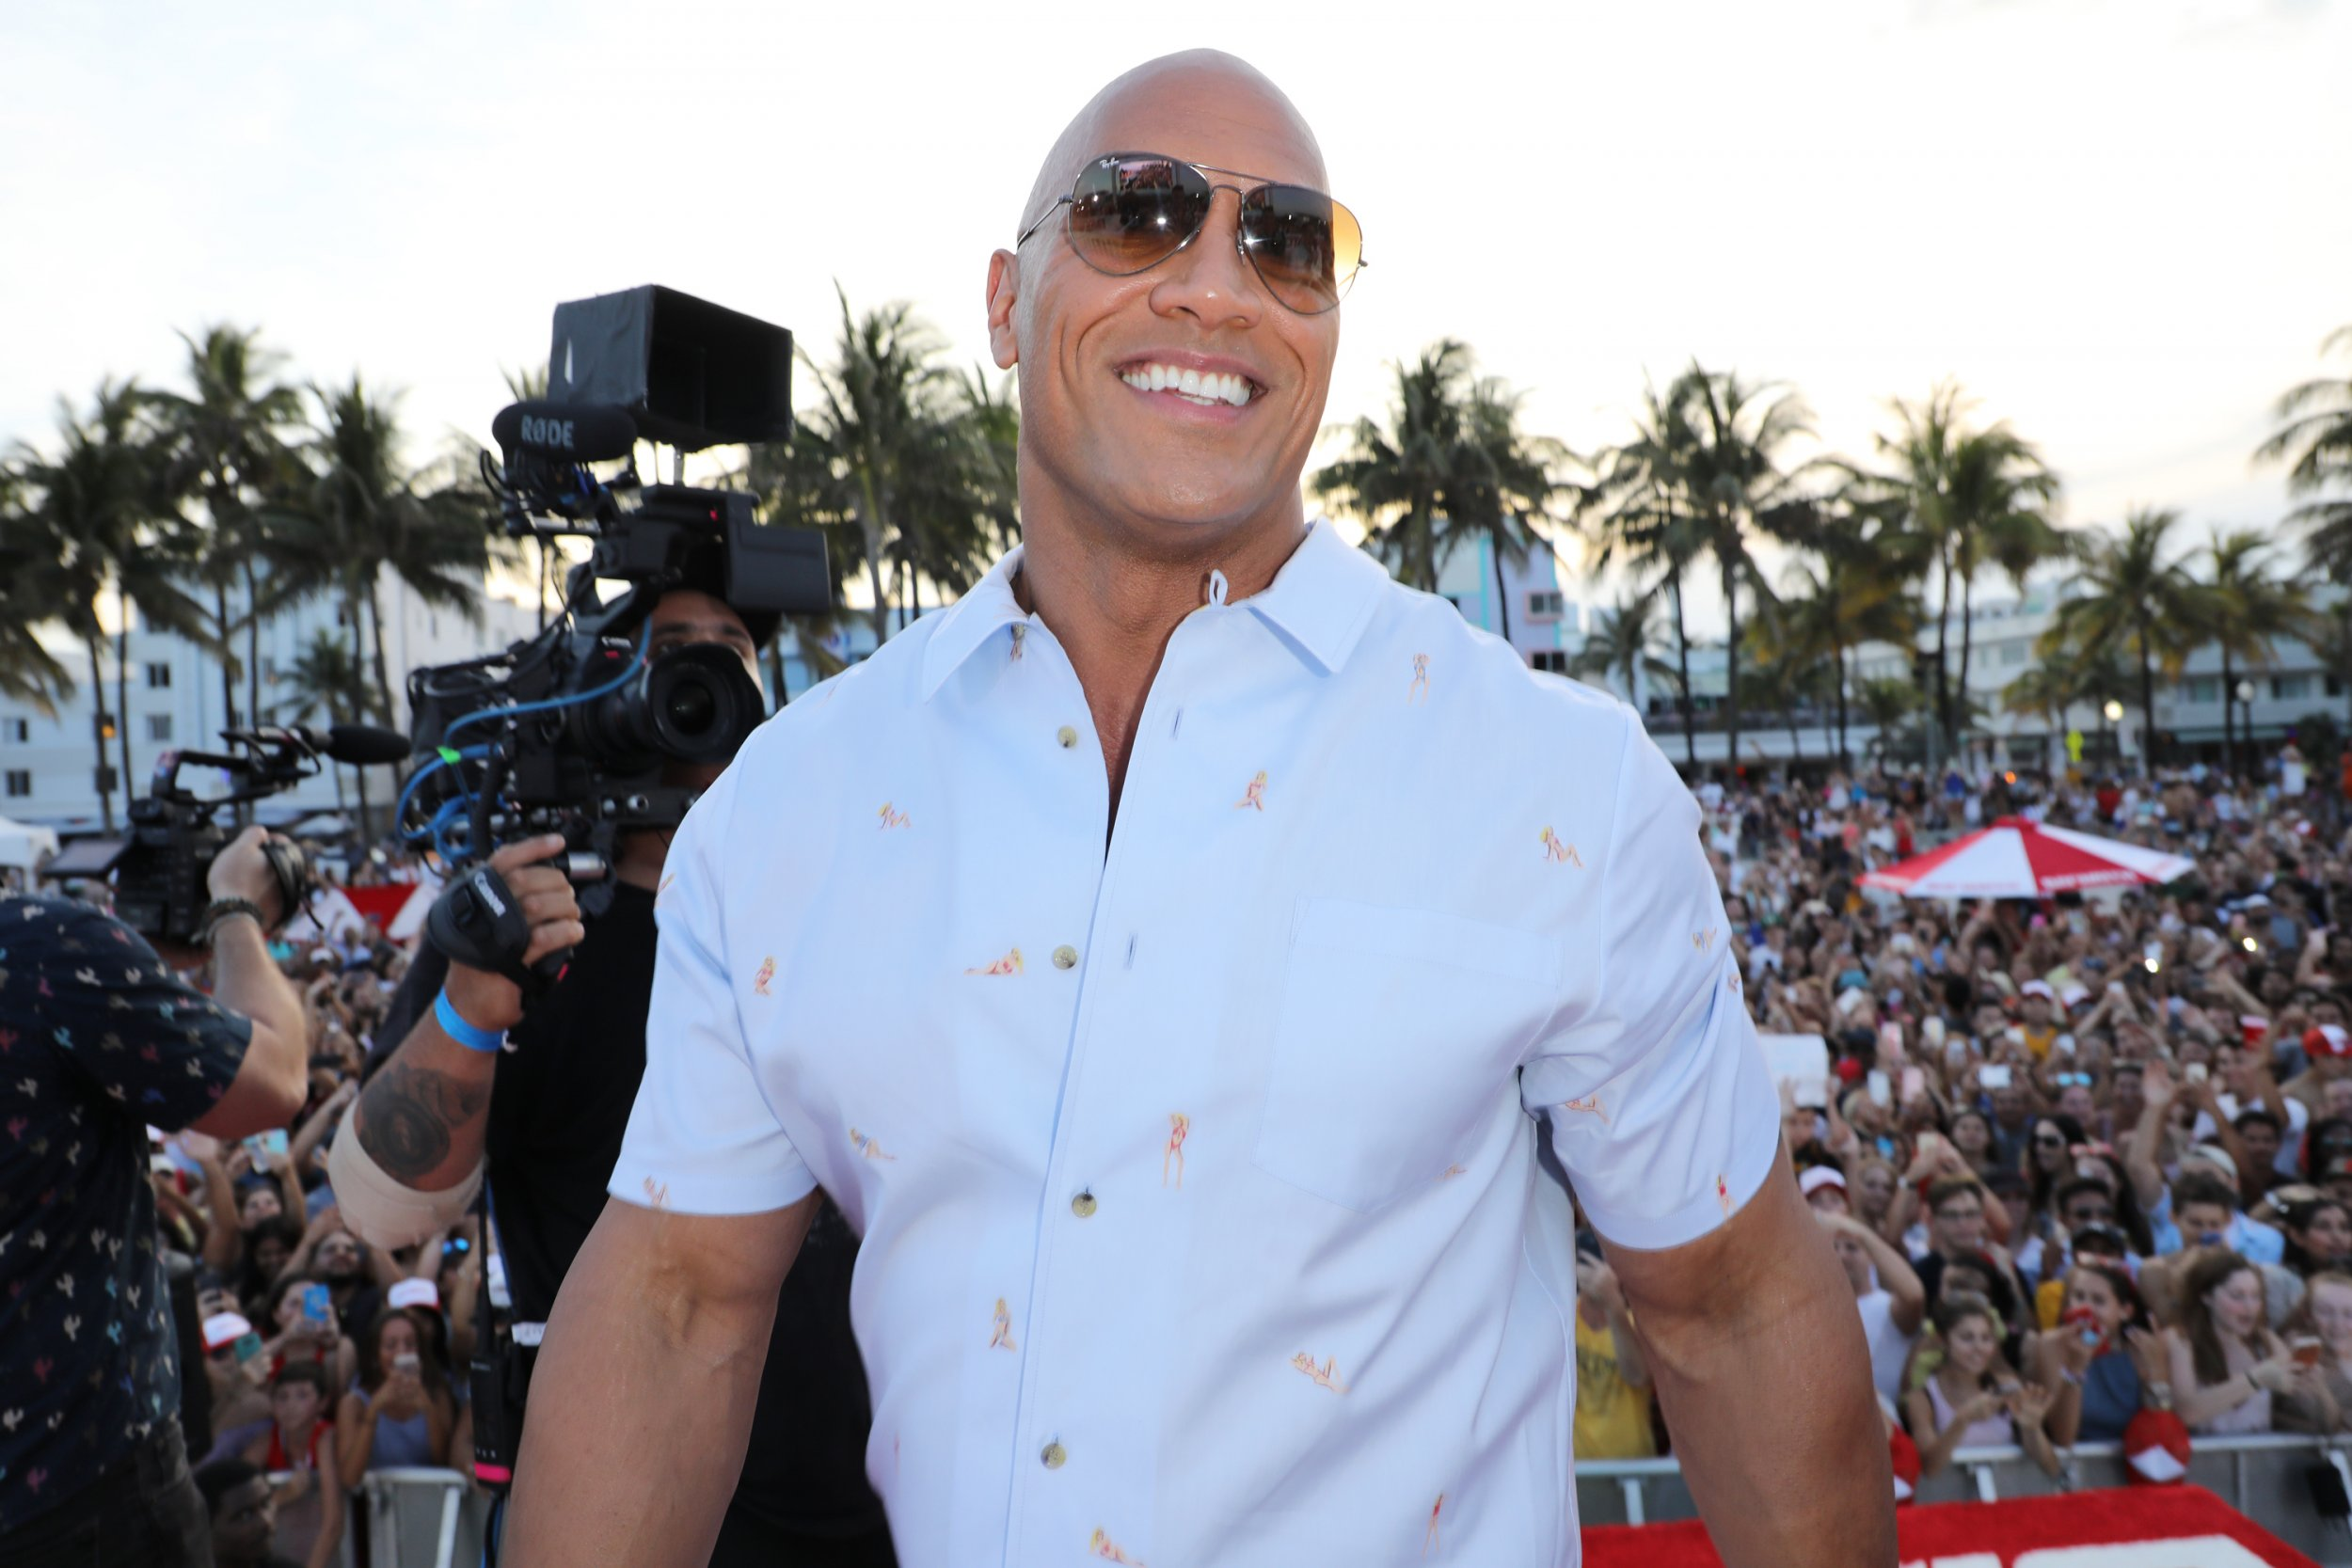 Dwayne Johnson - The Rock 2020 presidential campaign